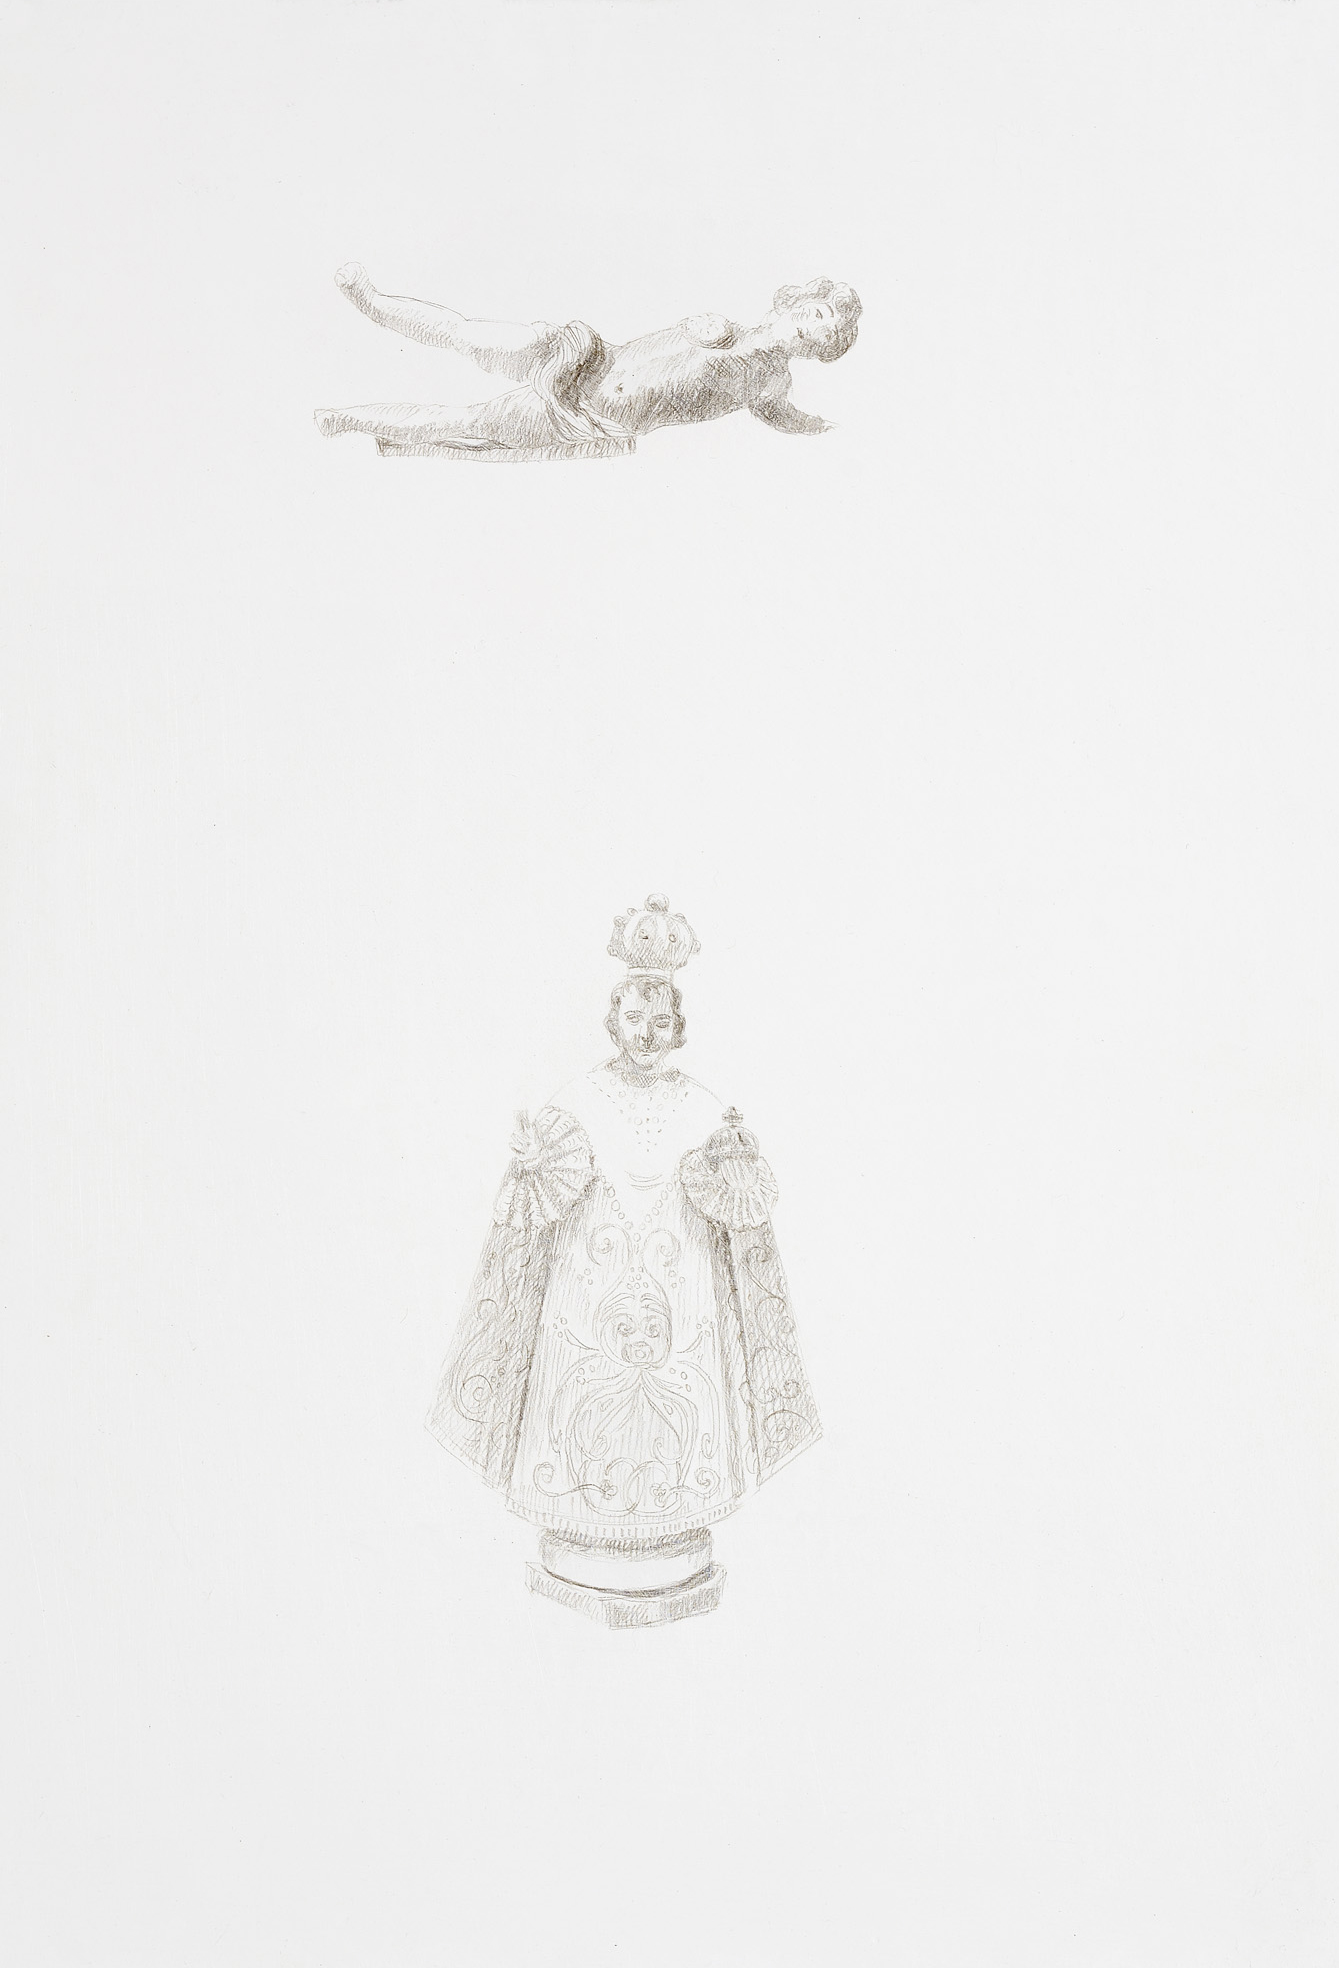 St. Anthony & Putti, silverpoint on gesso, 2010